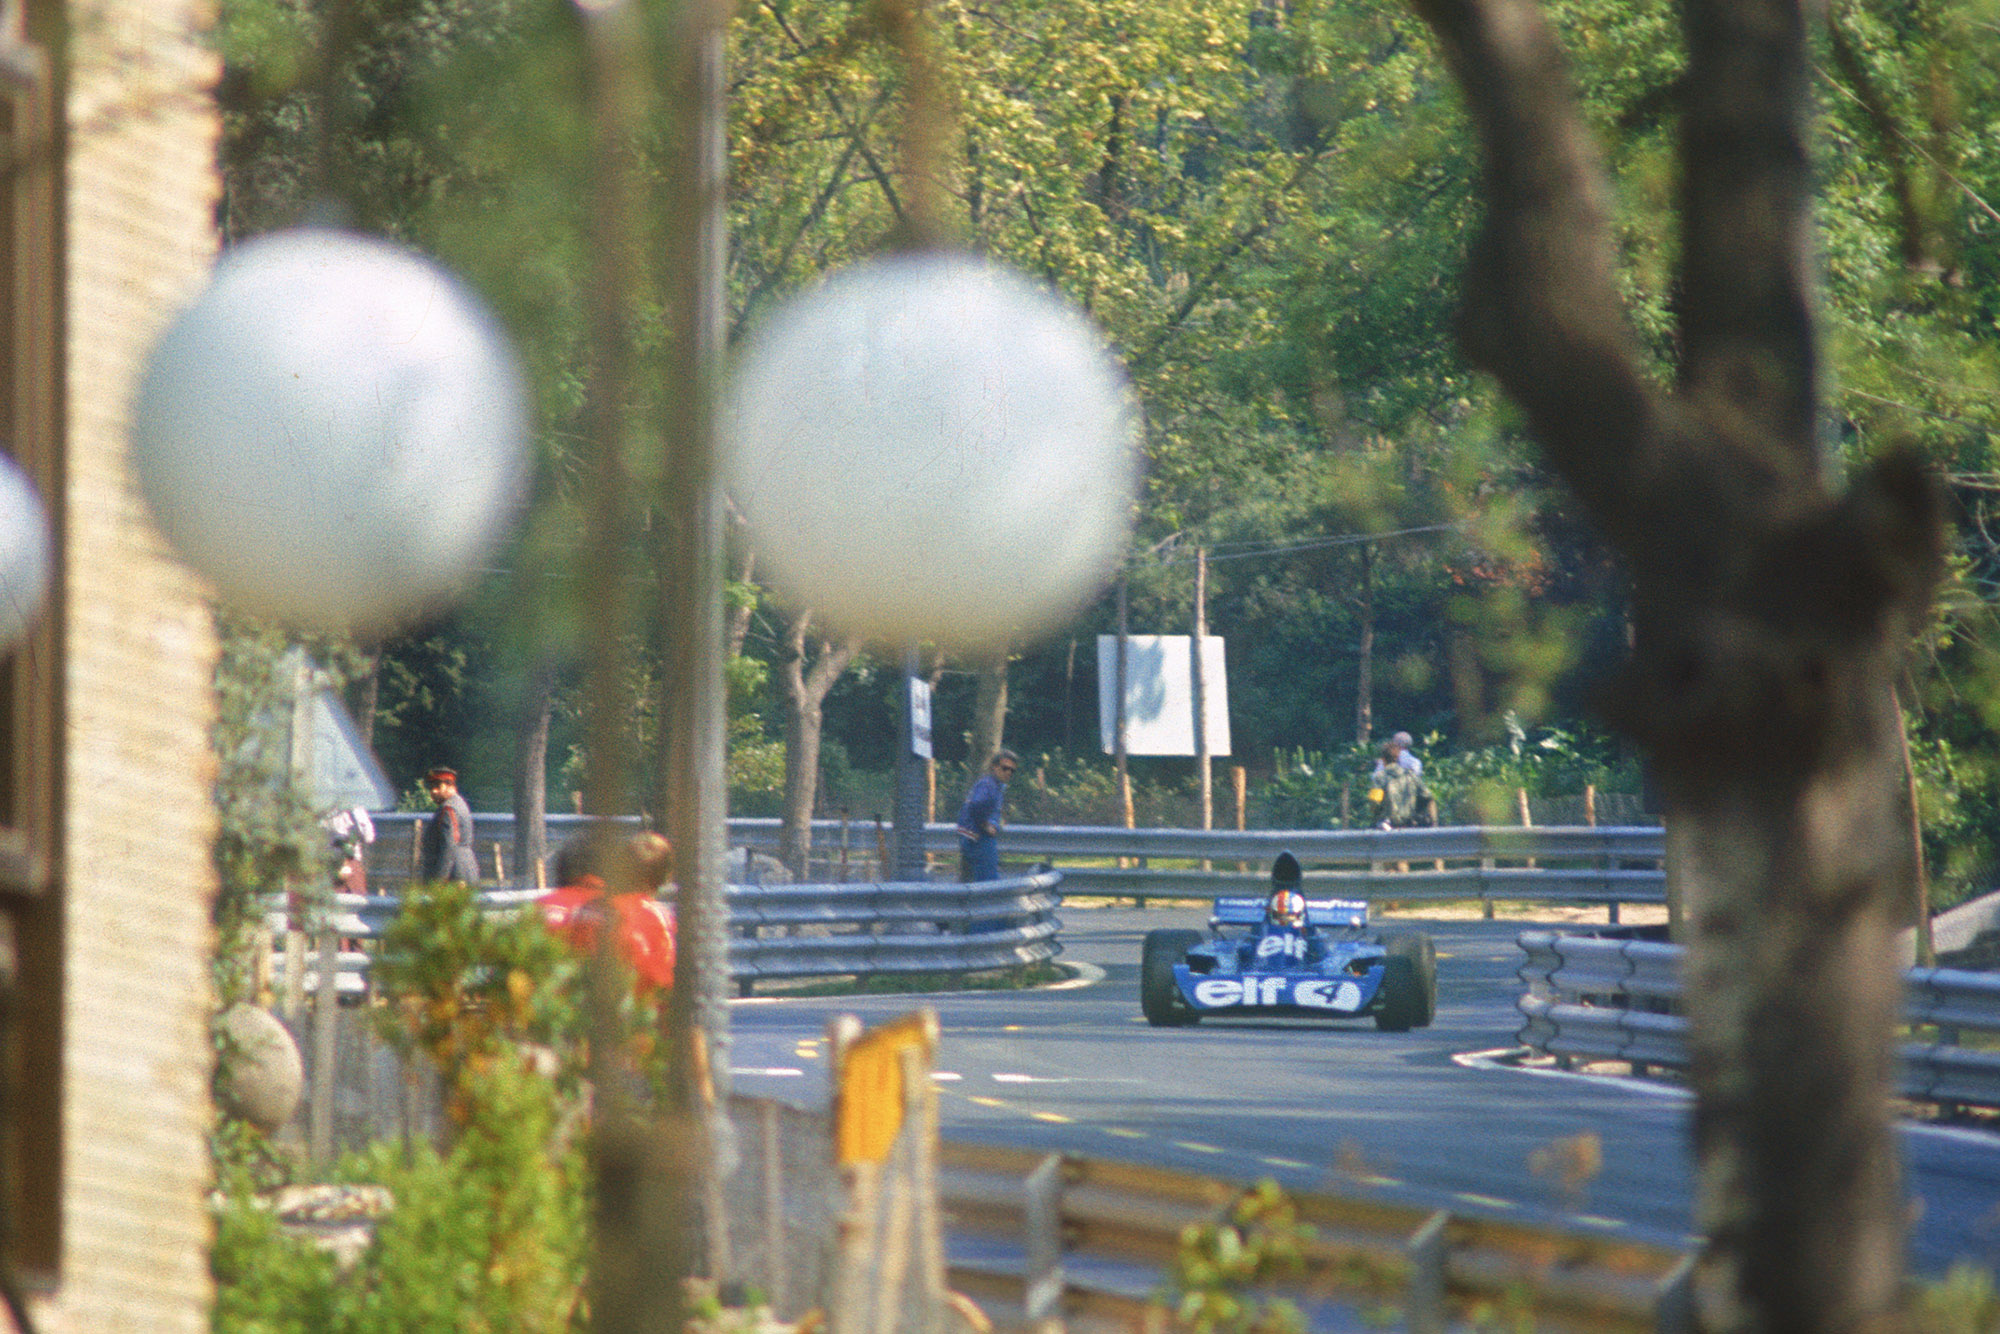 Francois Cevert racing in Montjuich Park during the 1973 Spanish Grand Prix